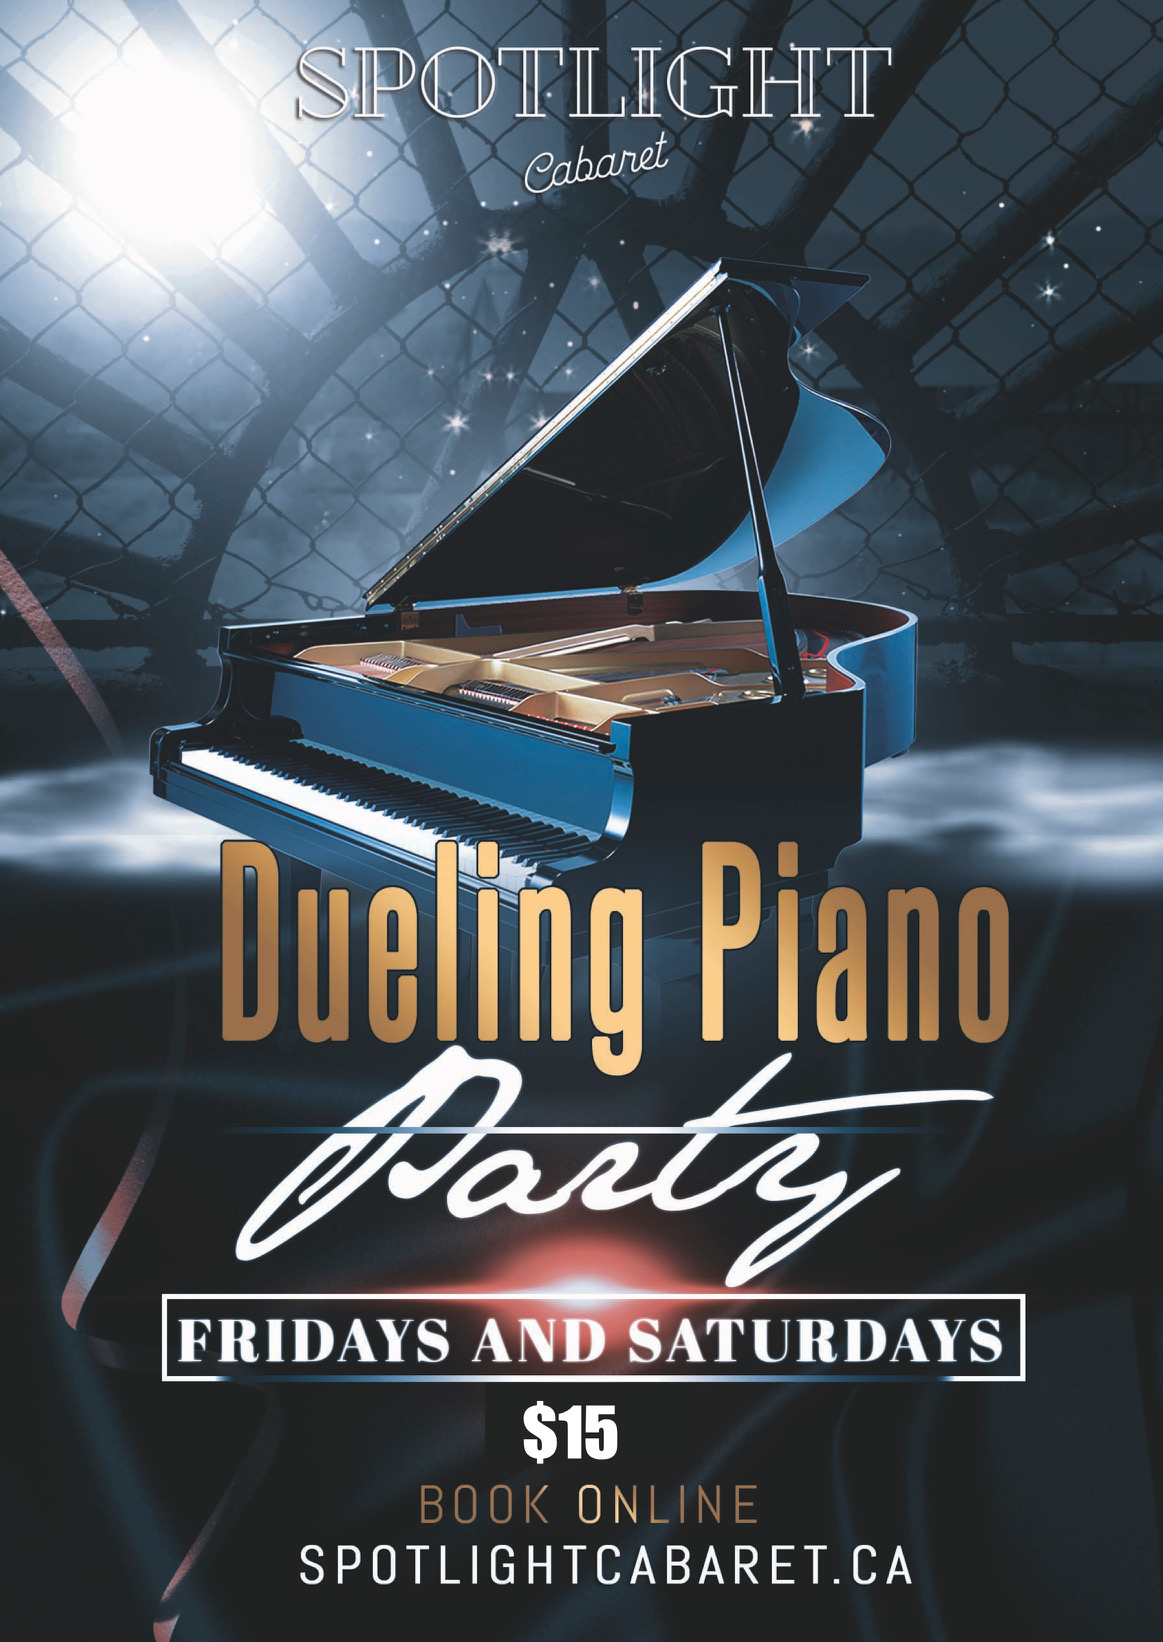 Dueling Piano Party